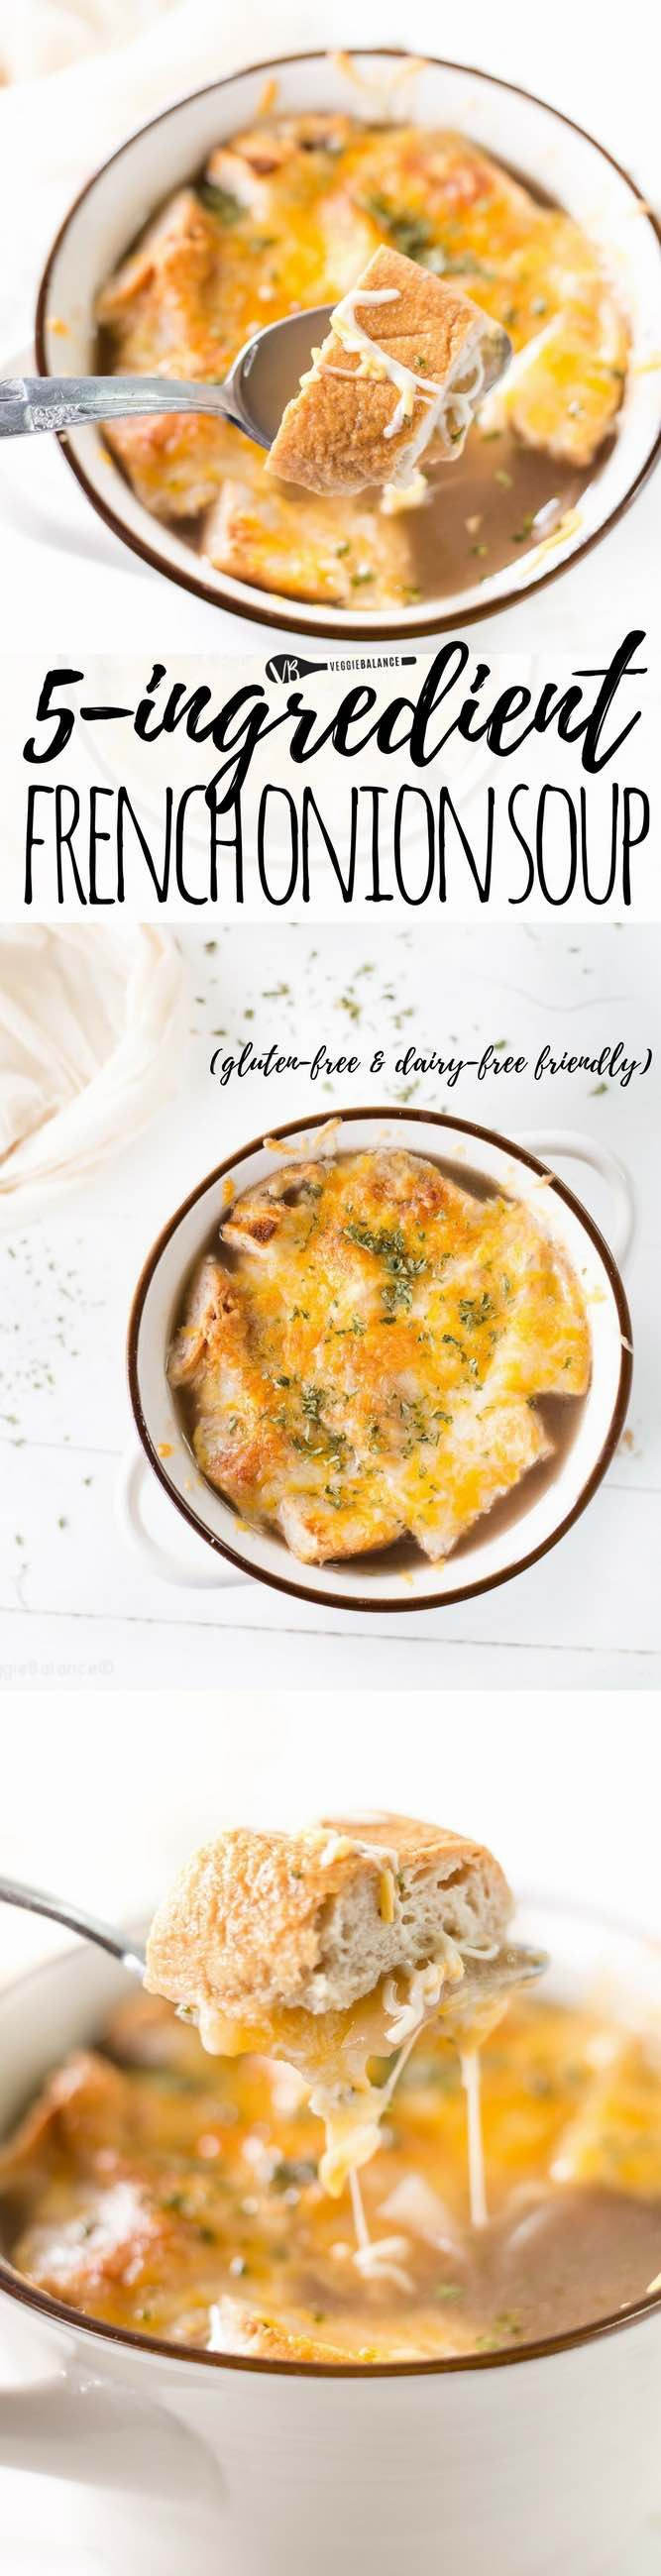 Gluten-Free French Onion Soup made with just 5 ingredients to make your tummy cozy and happy. this classic soup du jour is a delicious addition to your week. (gluten-free, low-sugar, nut-free, low-carb and dairy-free friendly) - Gluten Free Recipes | Easy Recipes by Veggie Balance